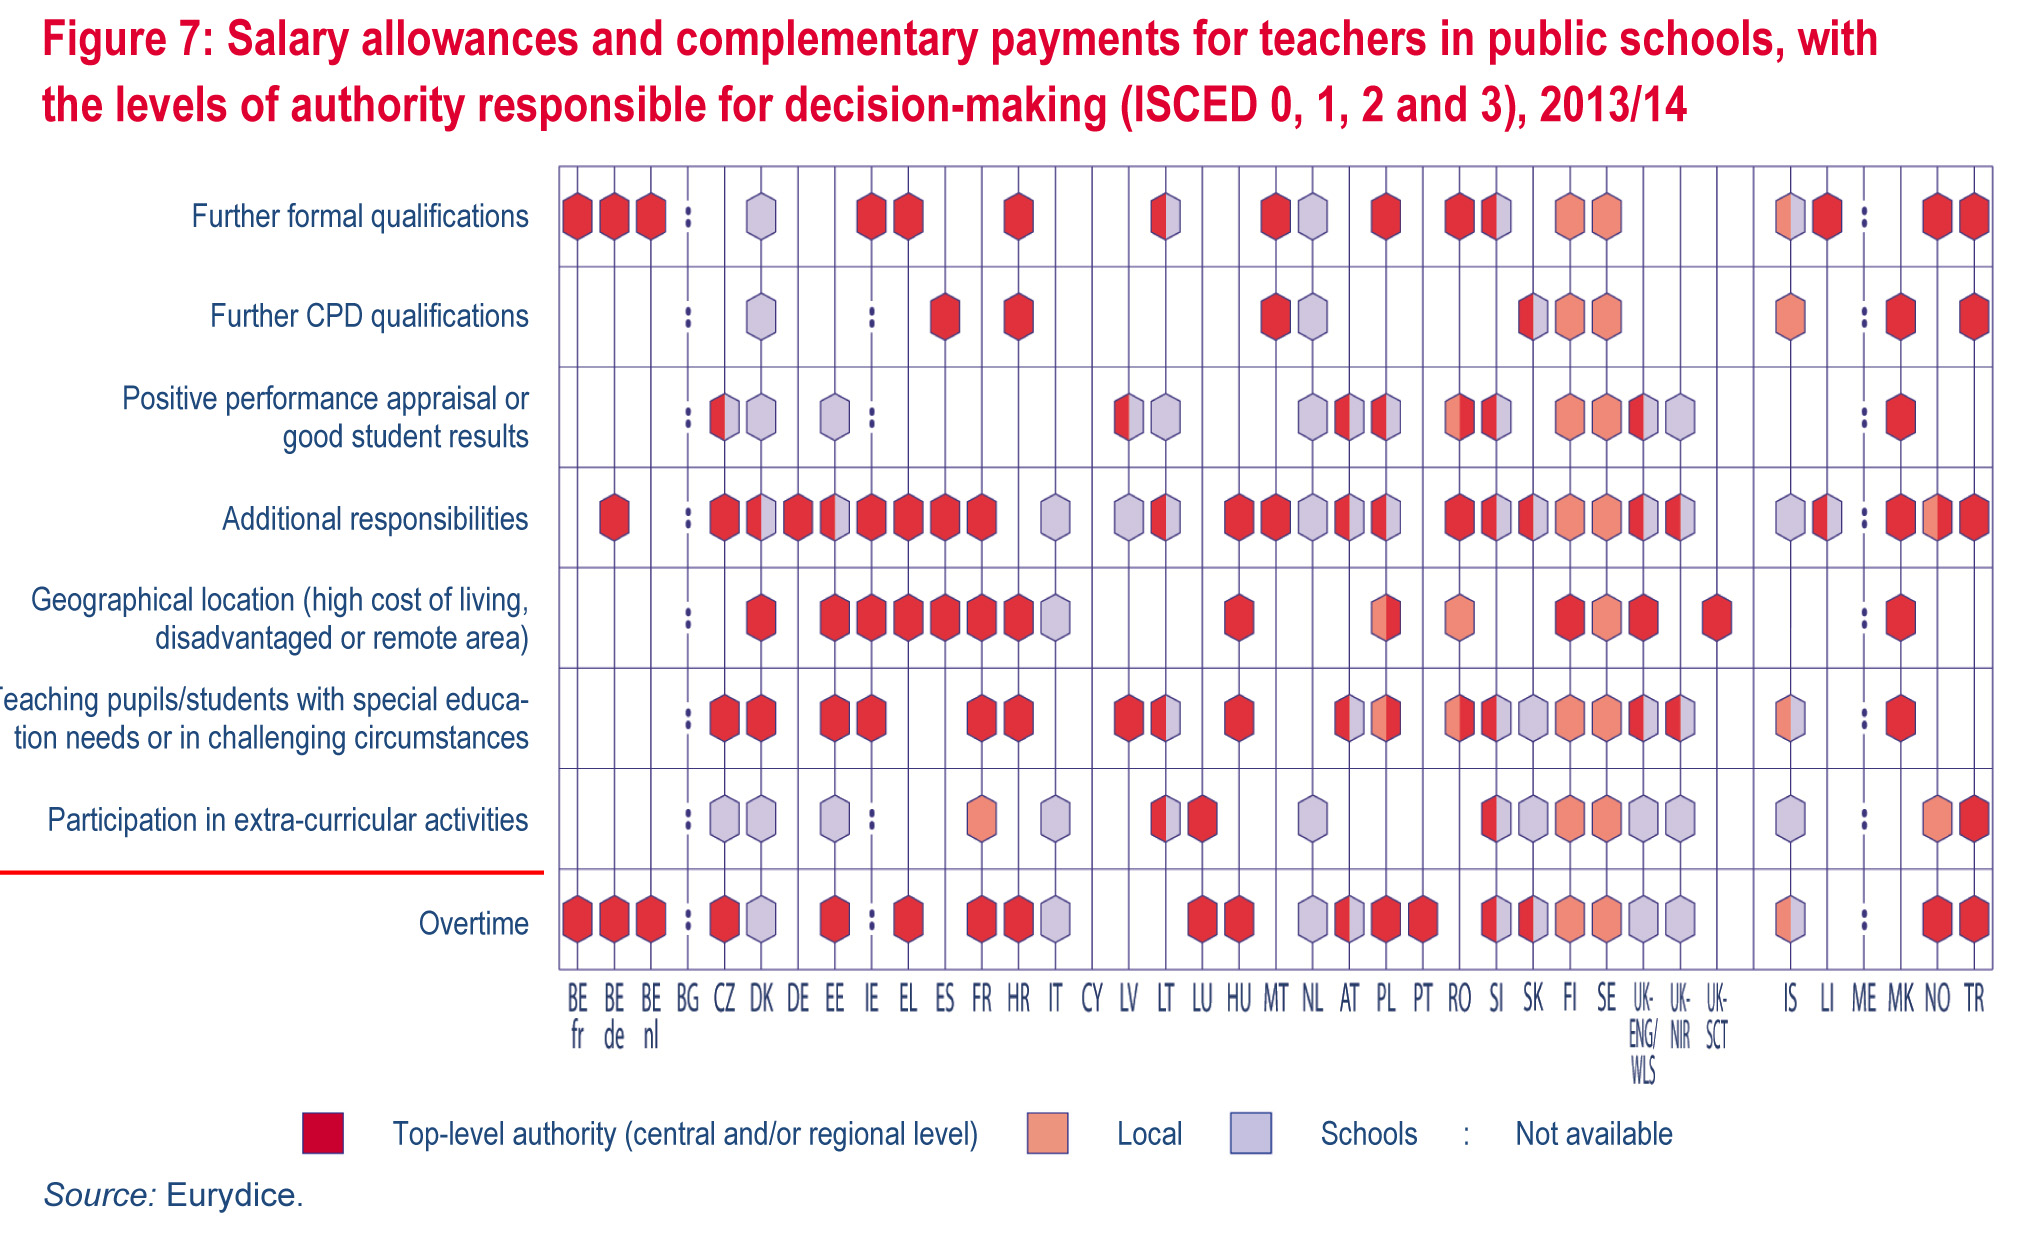 Teachers' and School Heads' Salaries and Allowances in Europe, 2